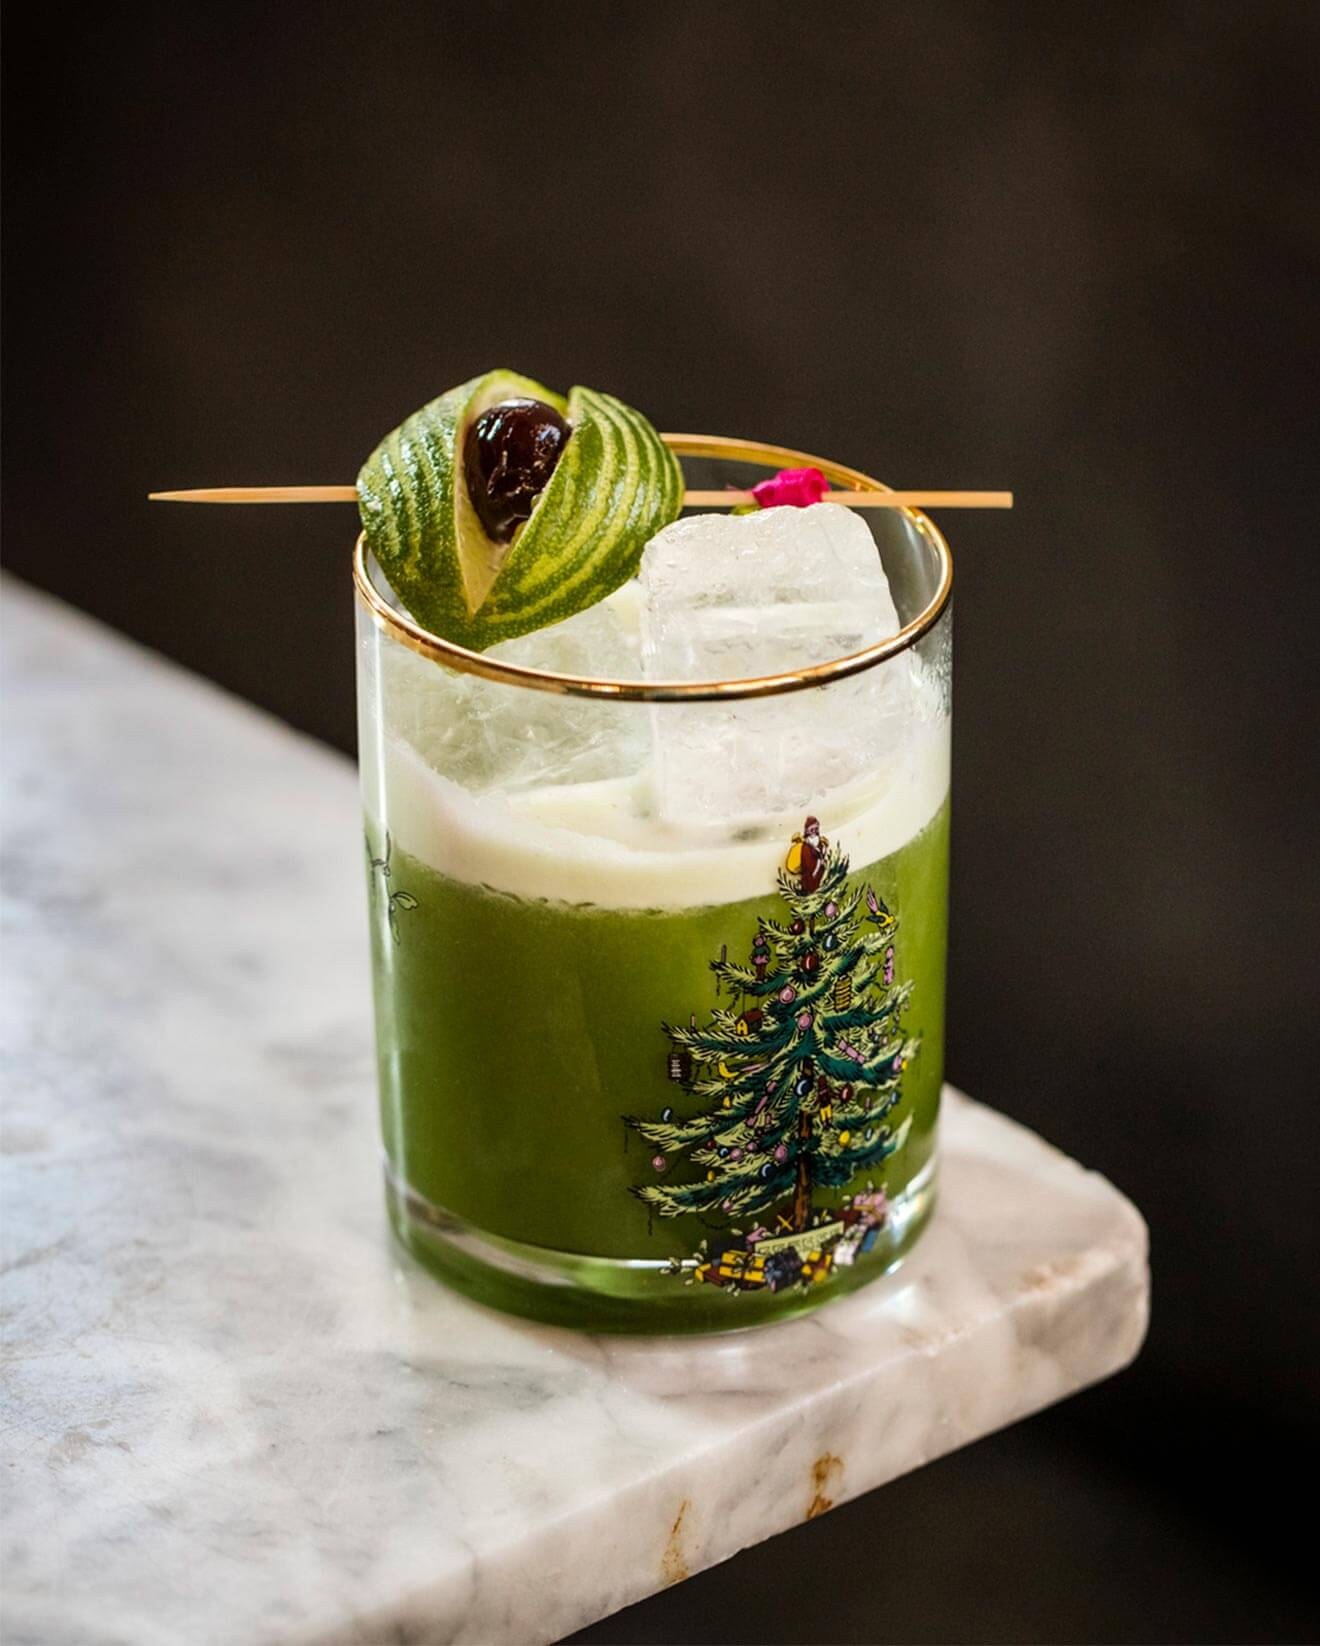 Grinch Don't Kill My Vibe, on marble table corner, cocktail with garnish